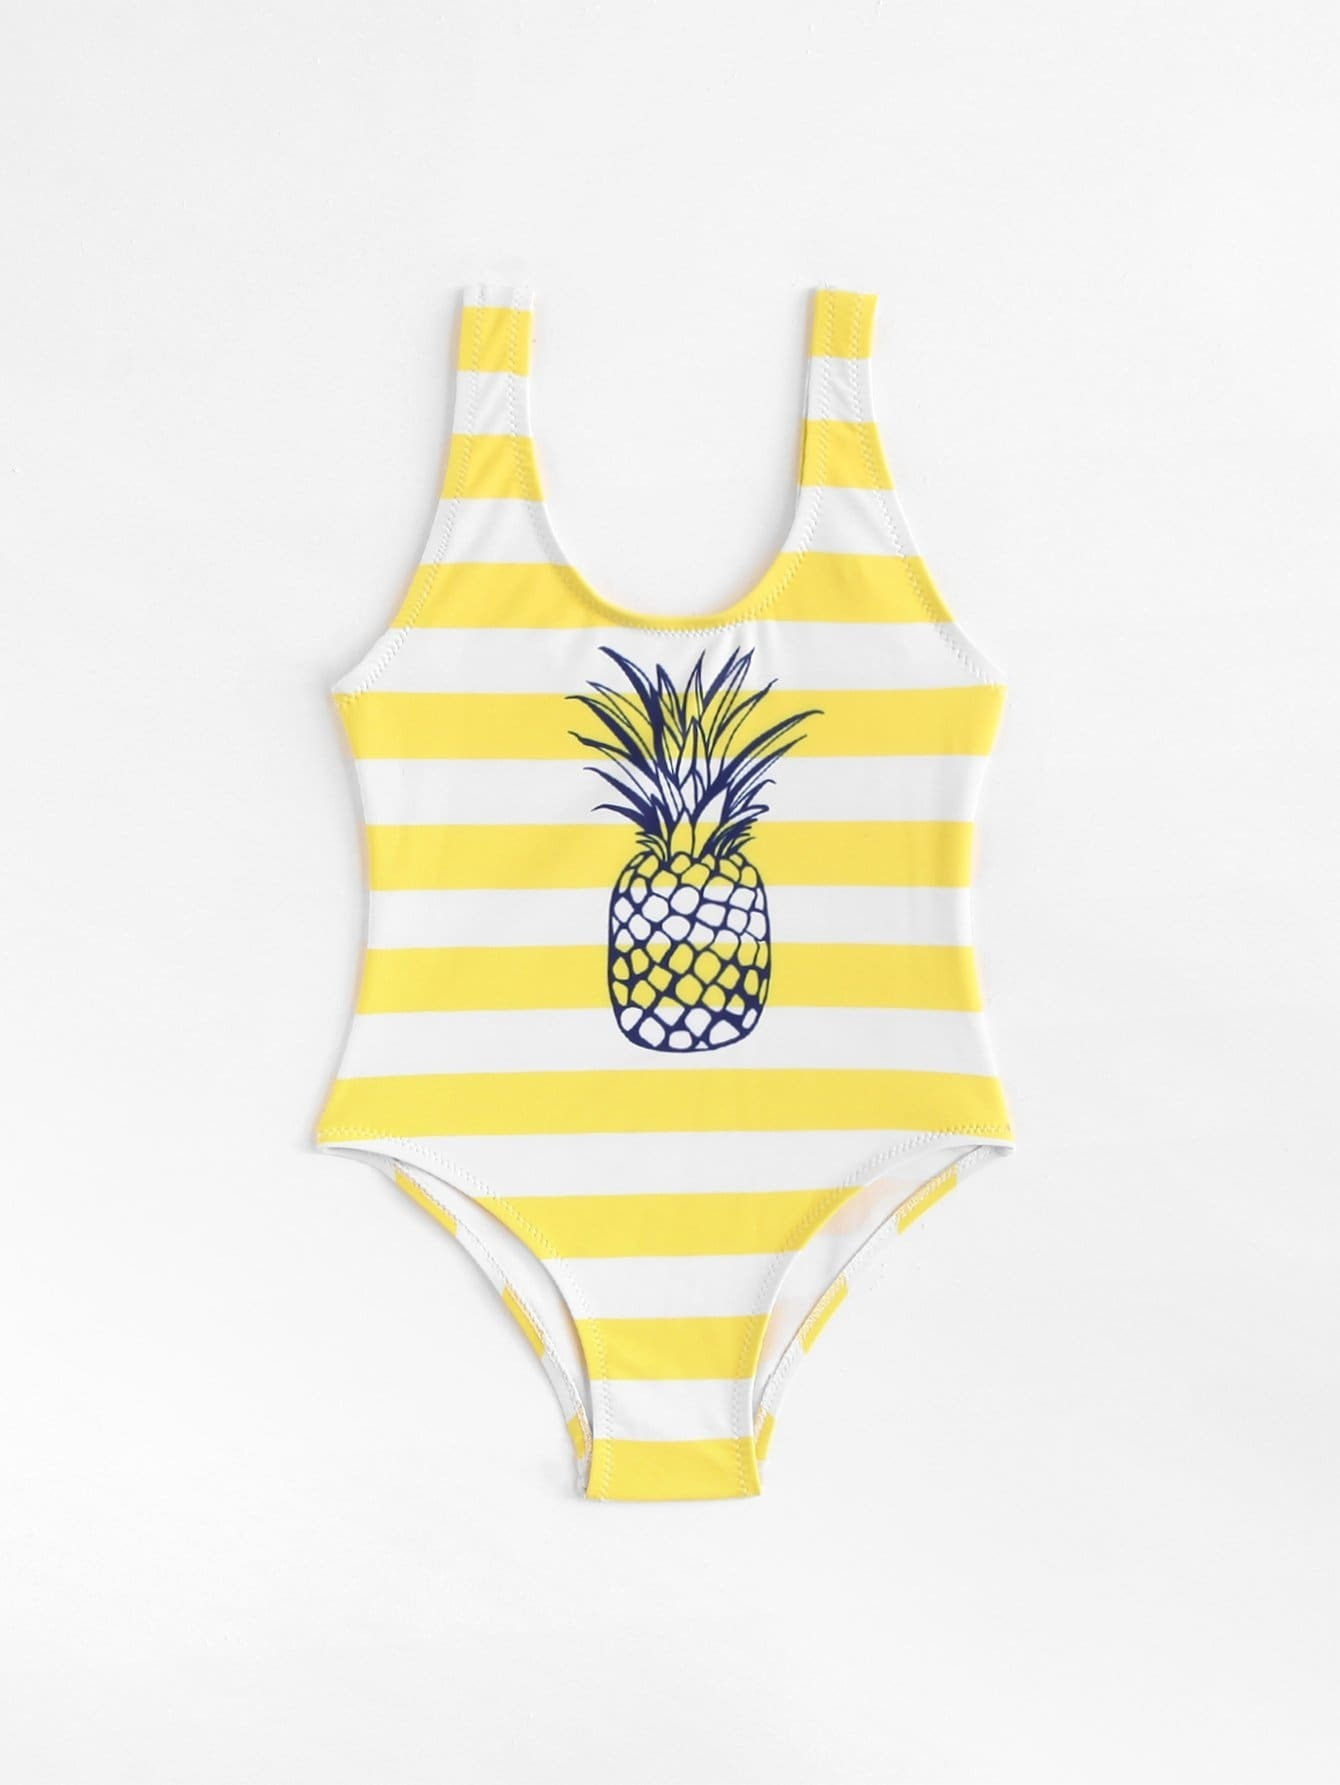 Girls Pineapple Print Striped Swimsuit колесные диски yamato sidzuoka v 2 y7225 7x17 5x105 et42 d56 6 wrw ep